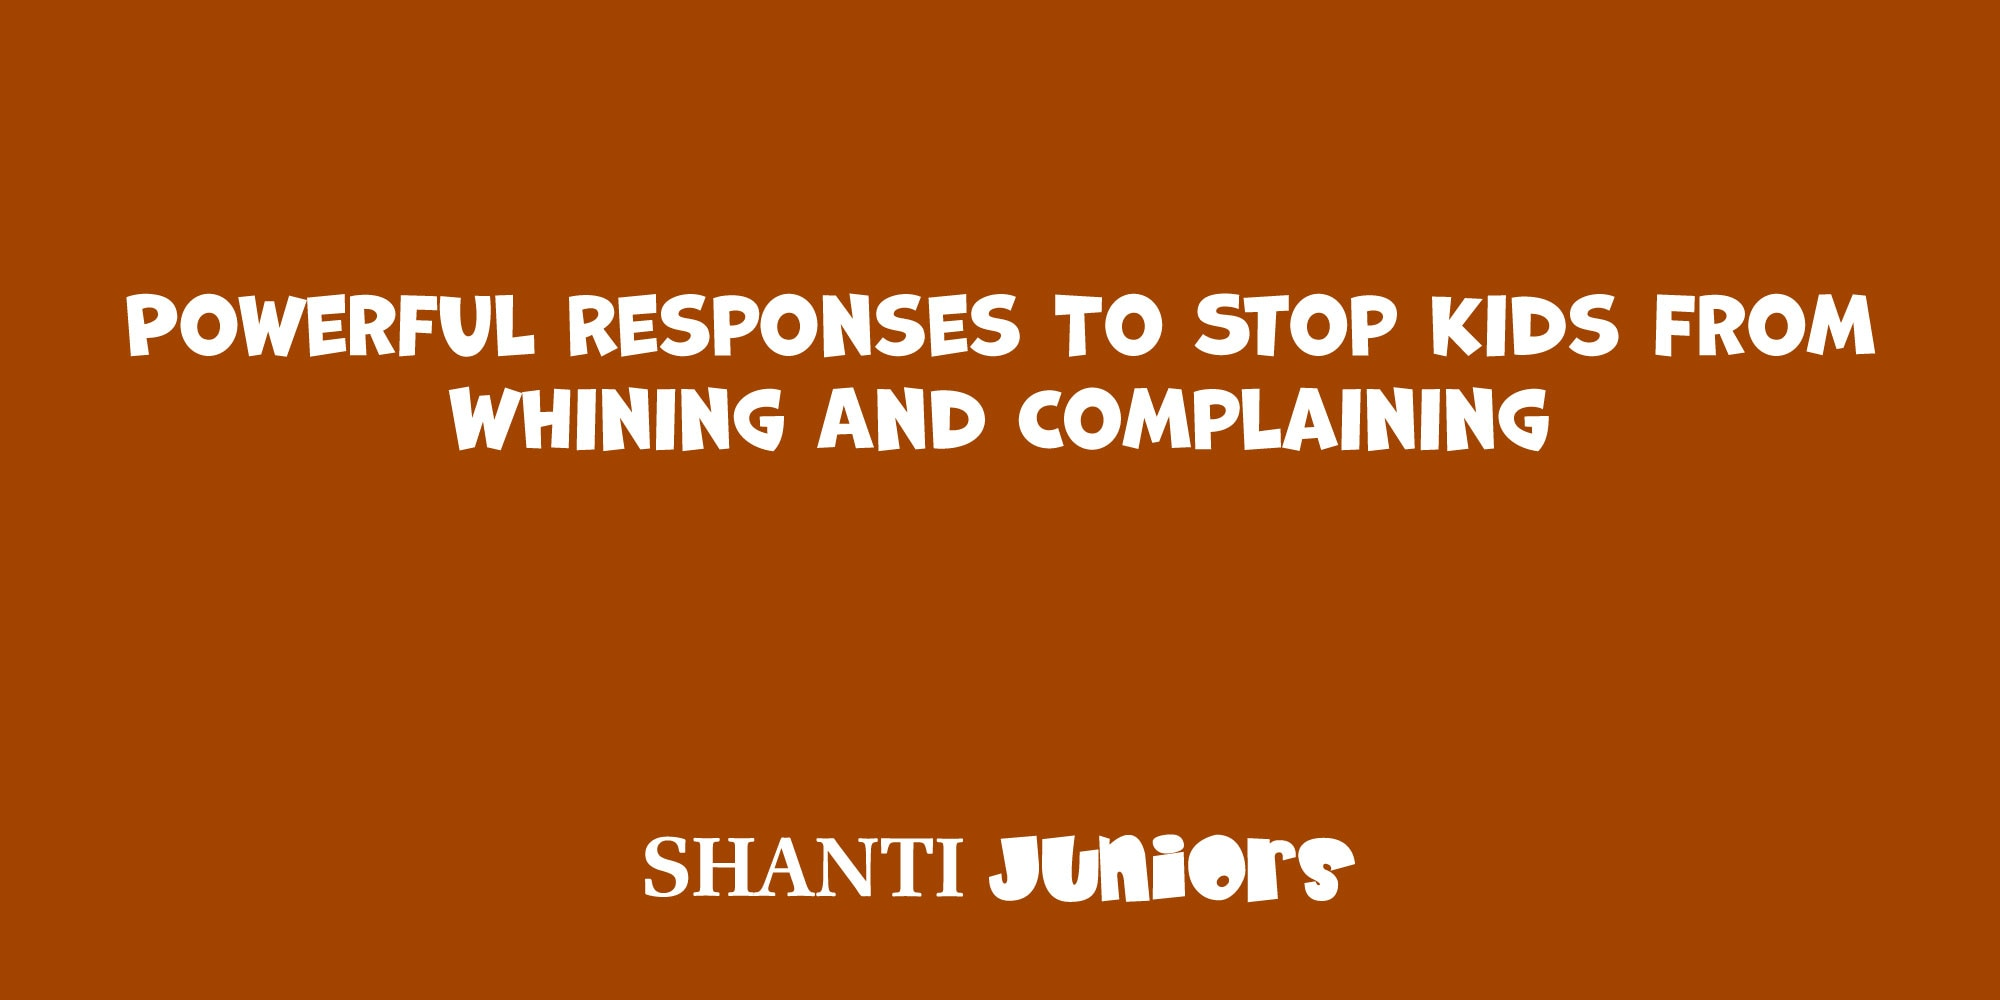 Powerful Responses To Stop Kids From Whining And Complaining